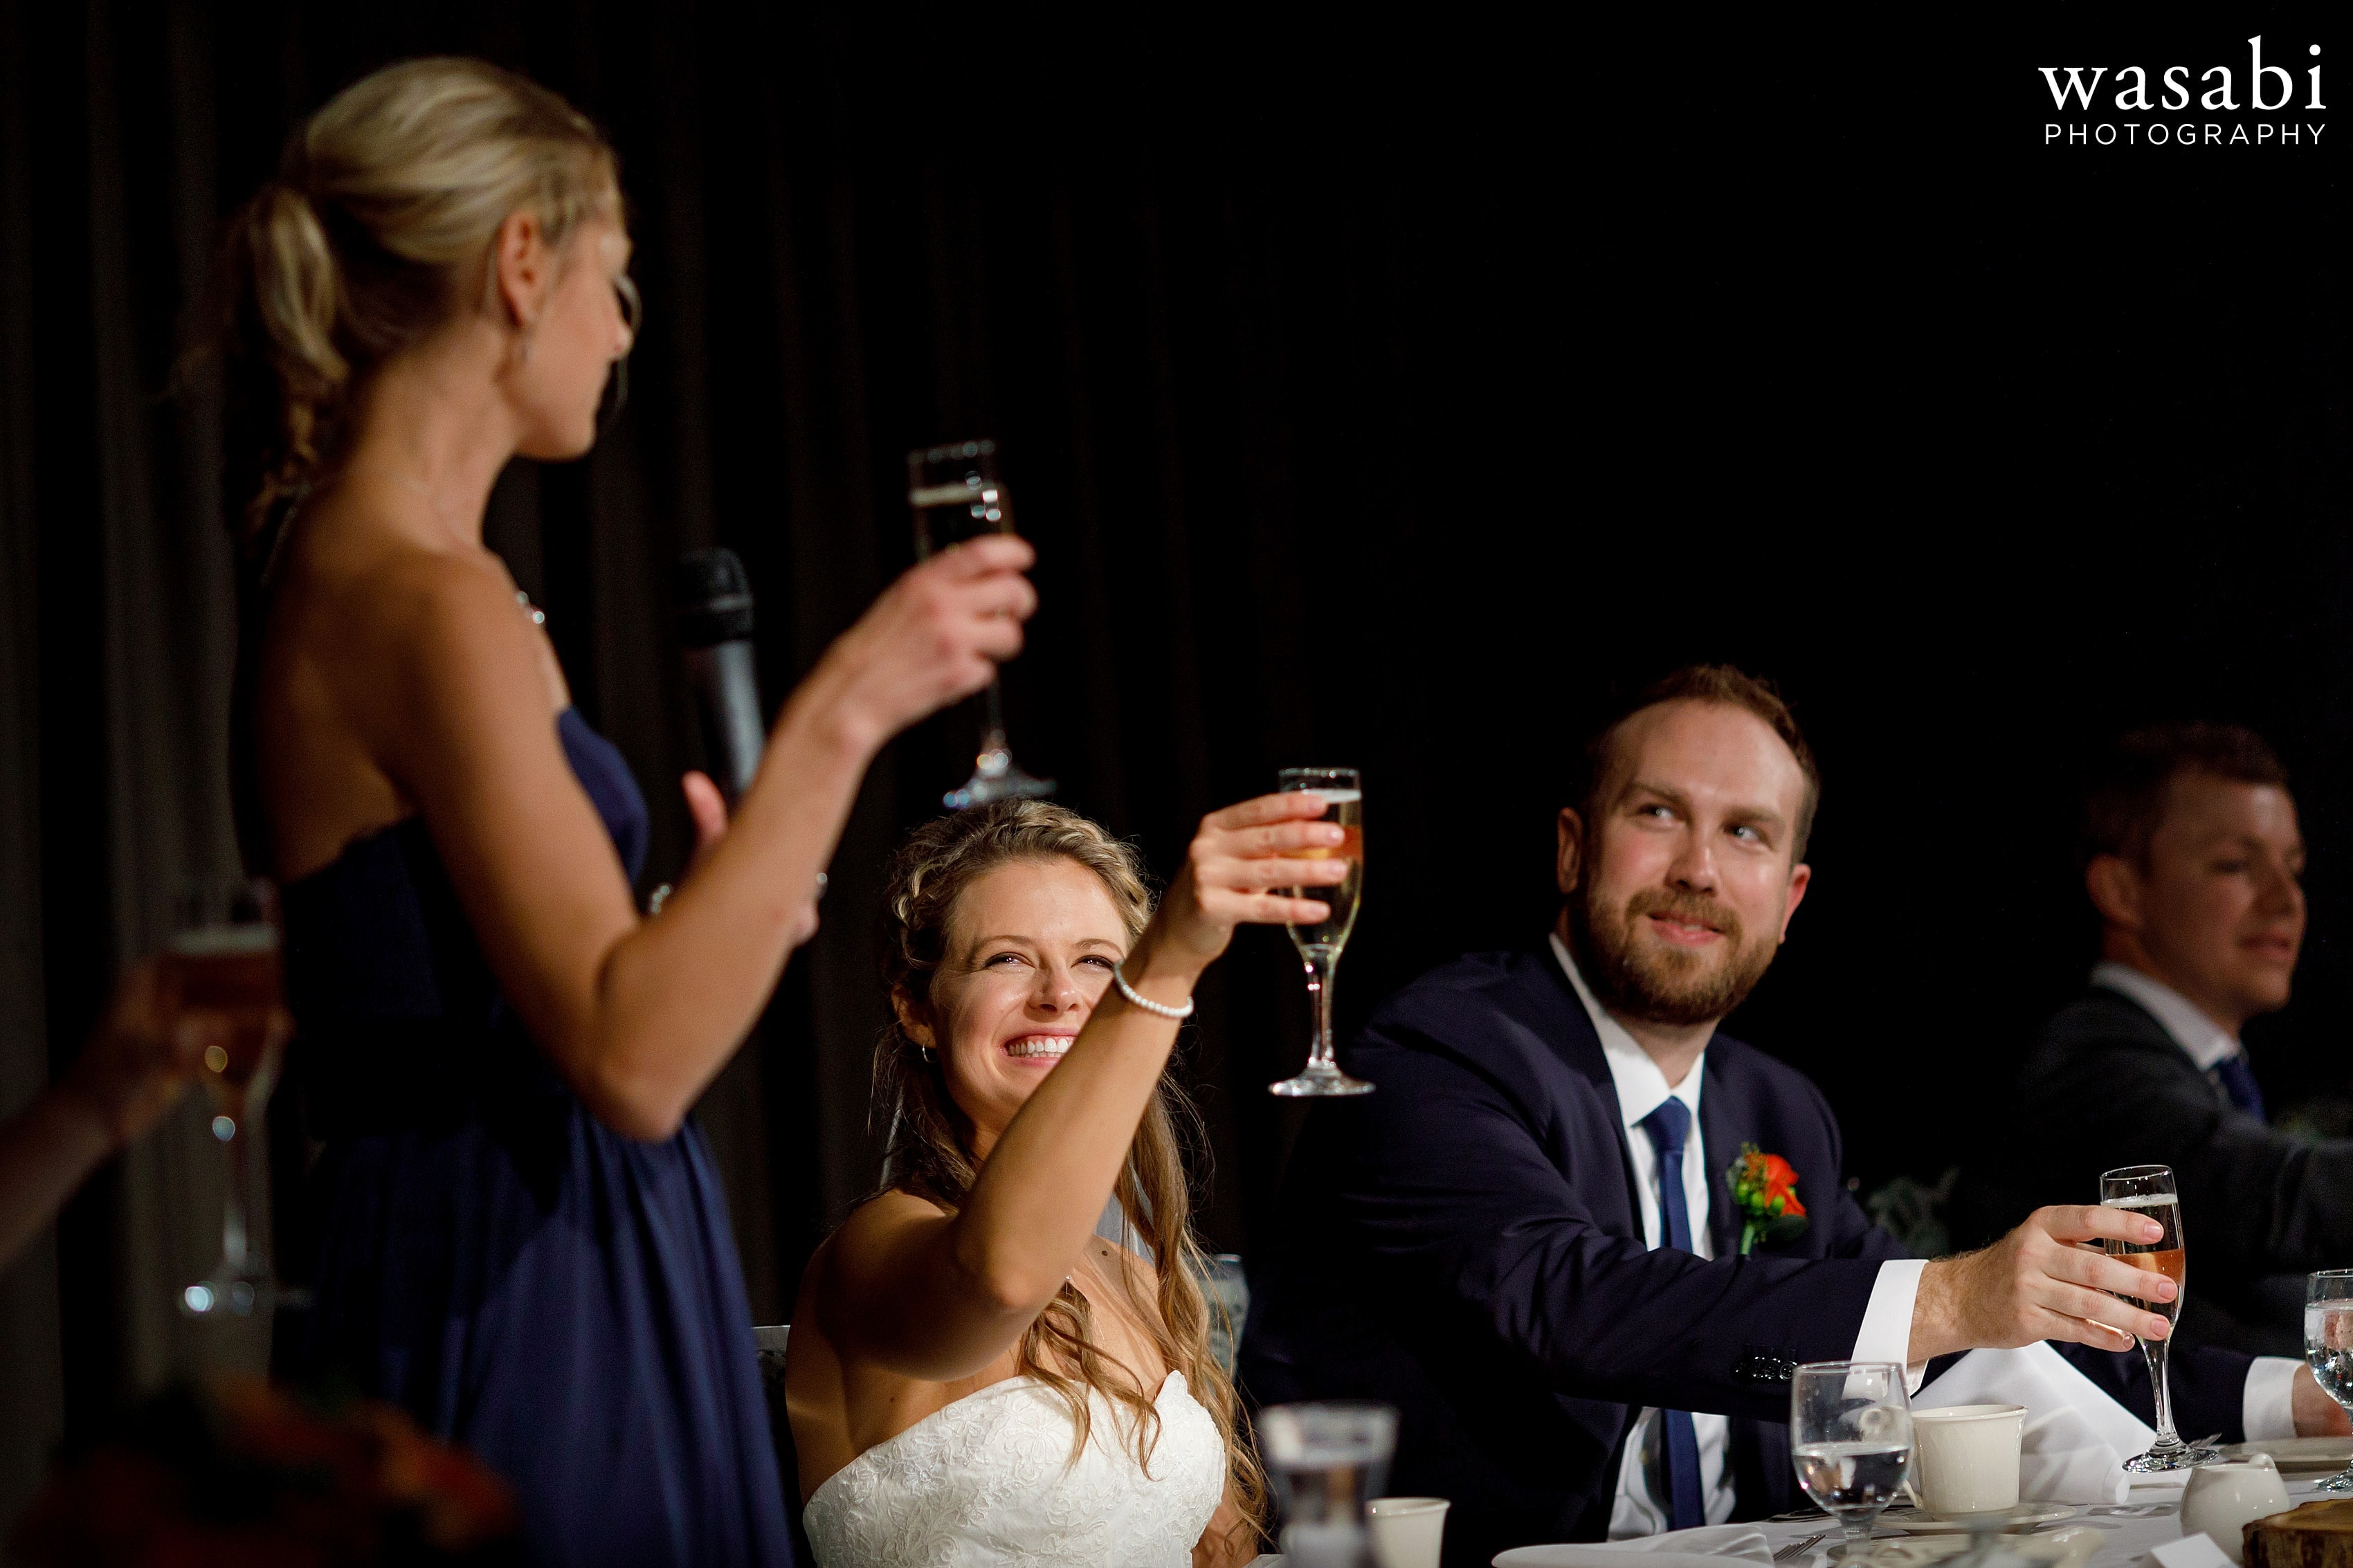 bridesmaid gives a toast during a wedding reception at Eberhard Center in downtown Grand Rapids